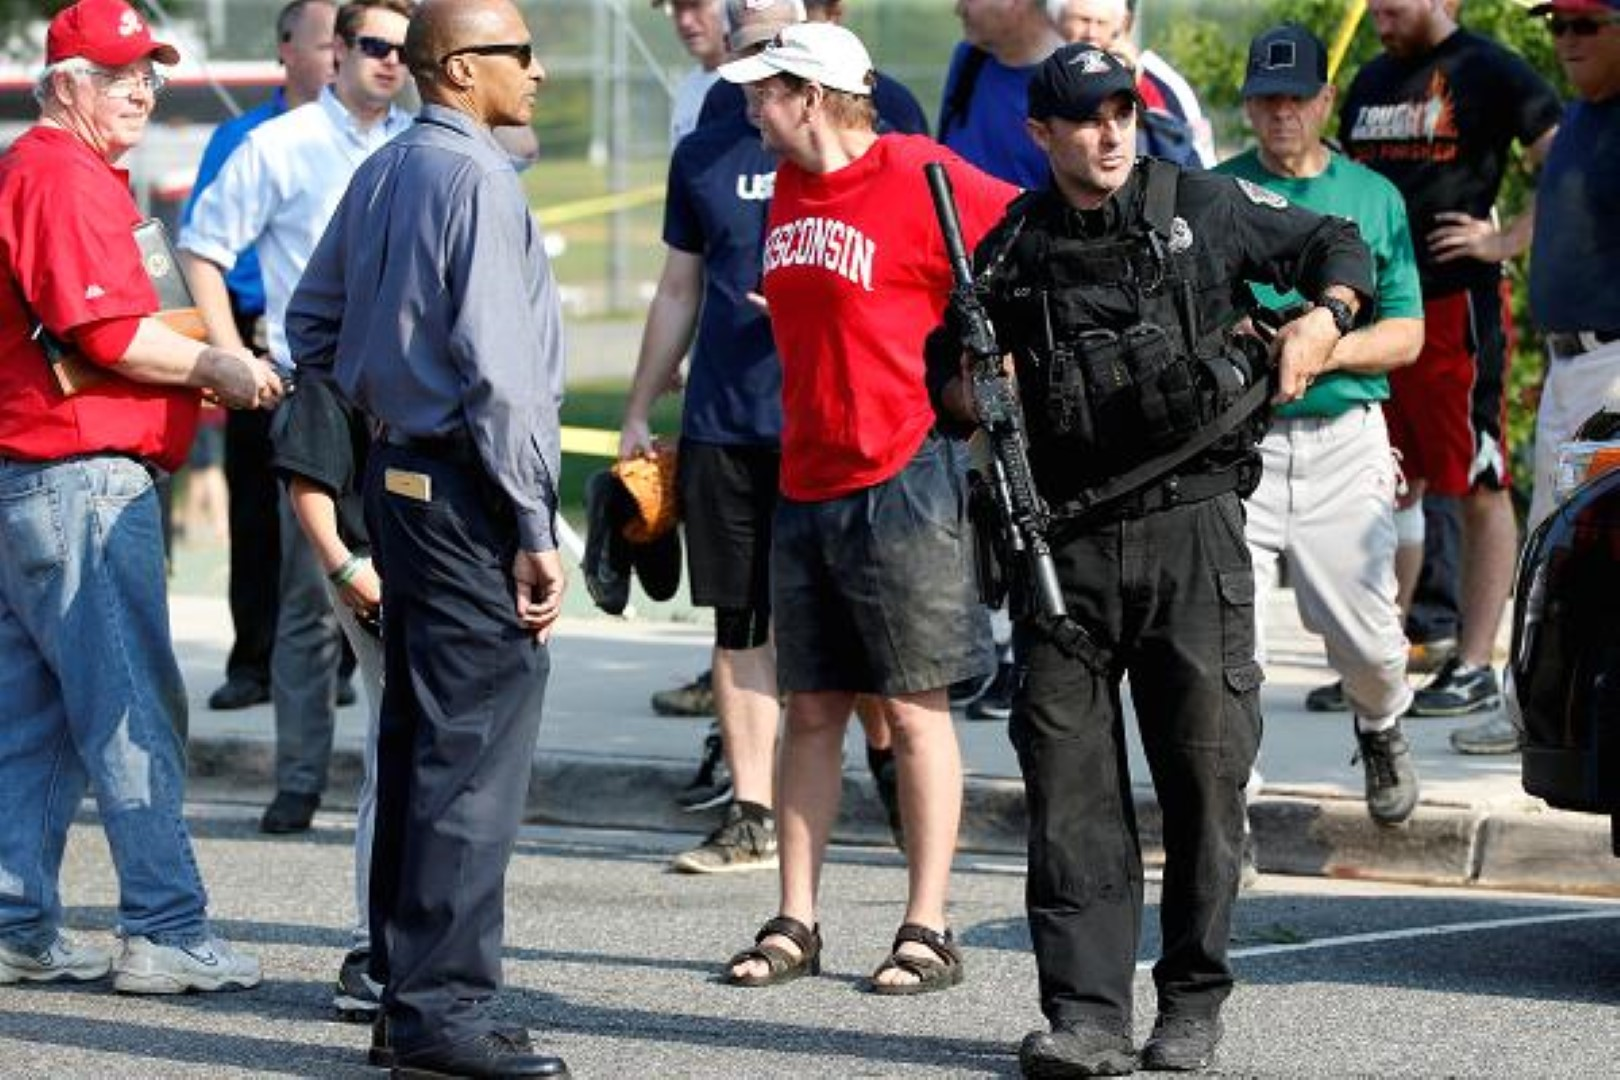 Gunman shoots congressman, police at Virginia baseball practice